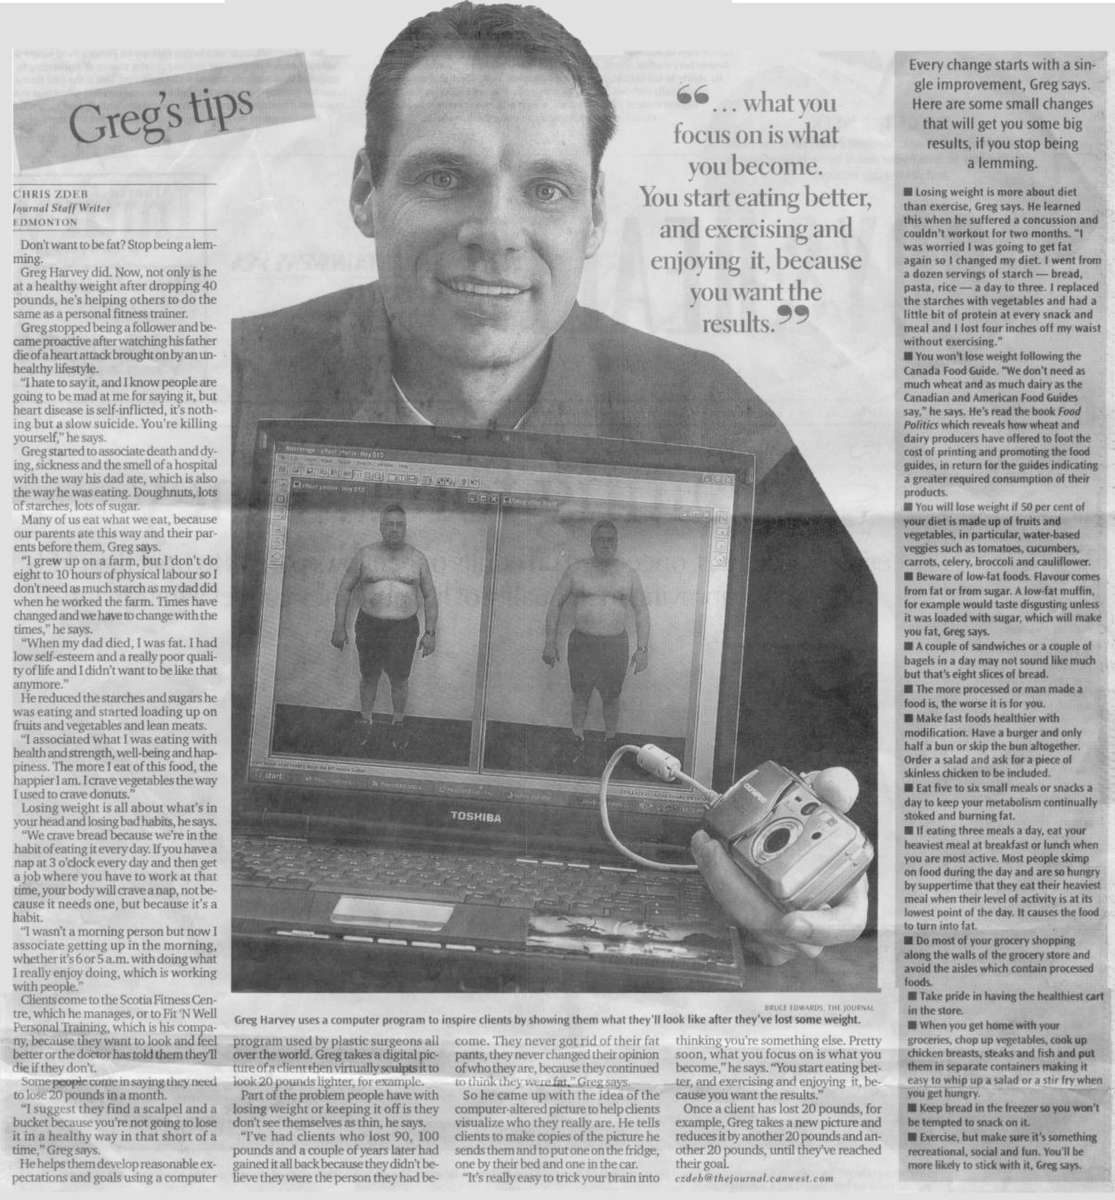 Chris Zdeb of the Edmonton Journal interviews personal trainer, Greg Harvey of Fit 'N' Well Personal Training inquiring about fitness and visualization.